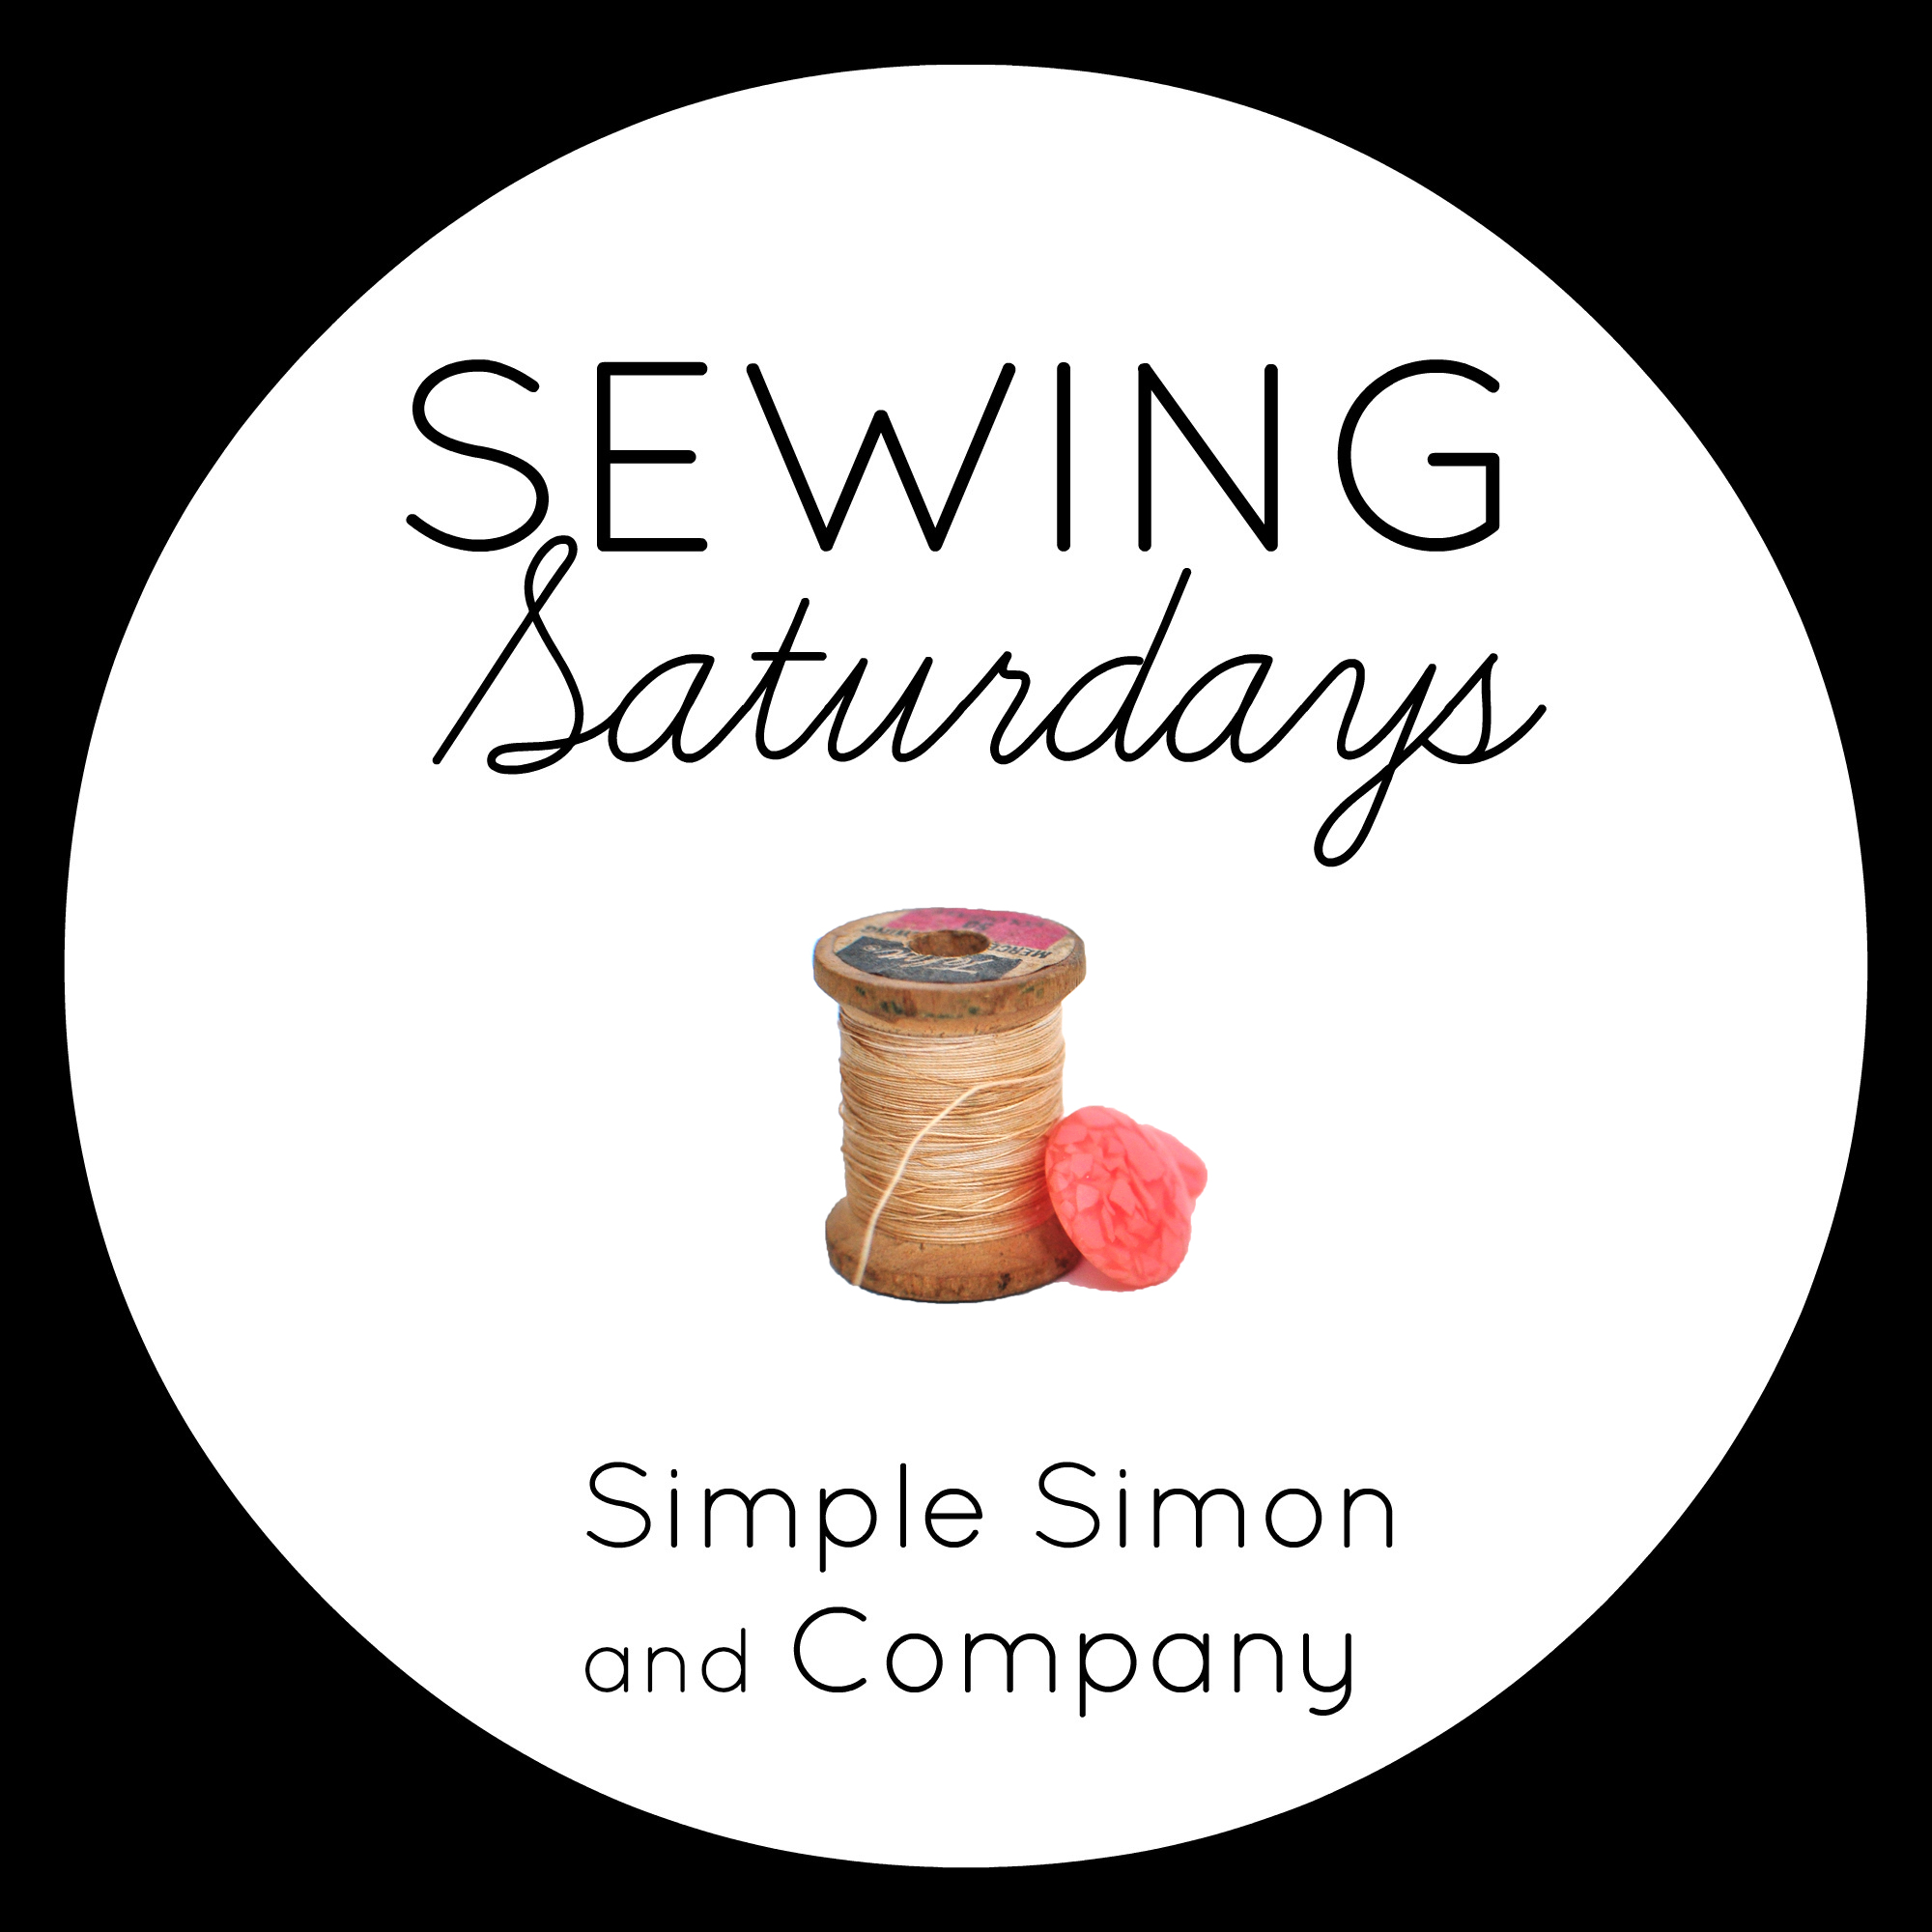 Sewing Saturdays